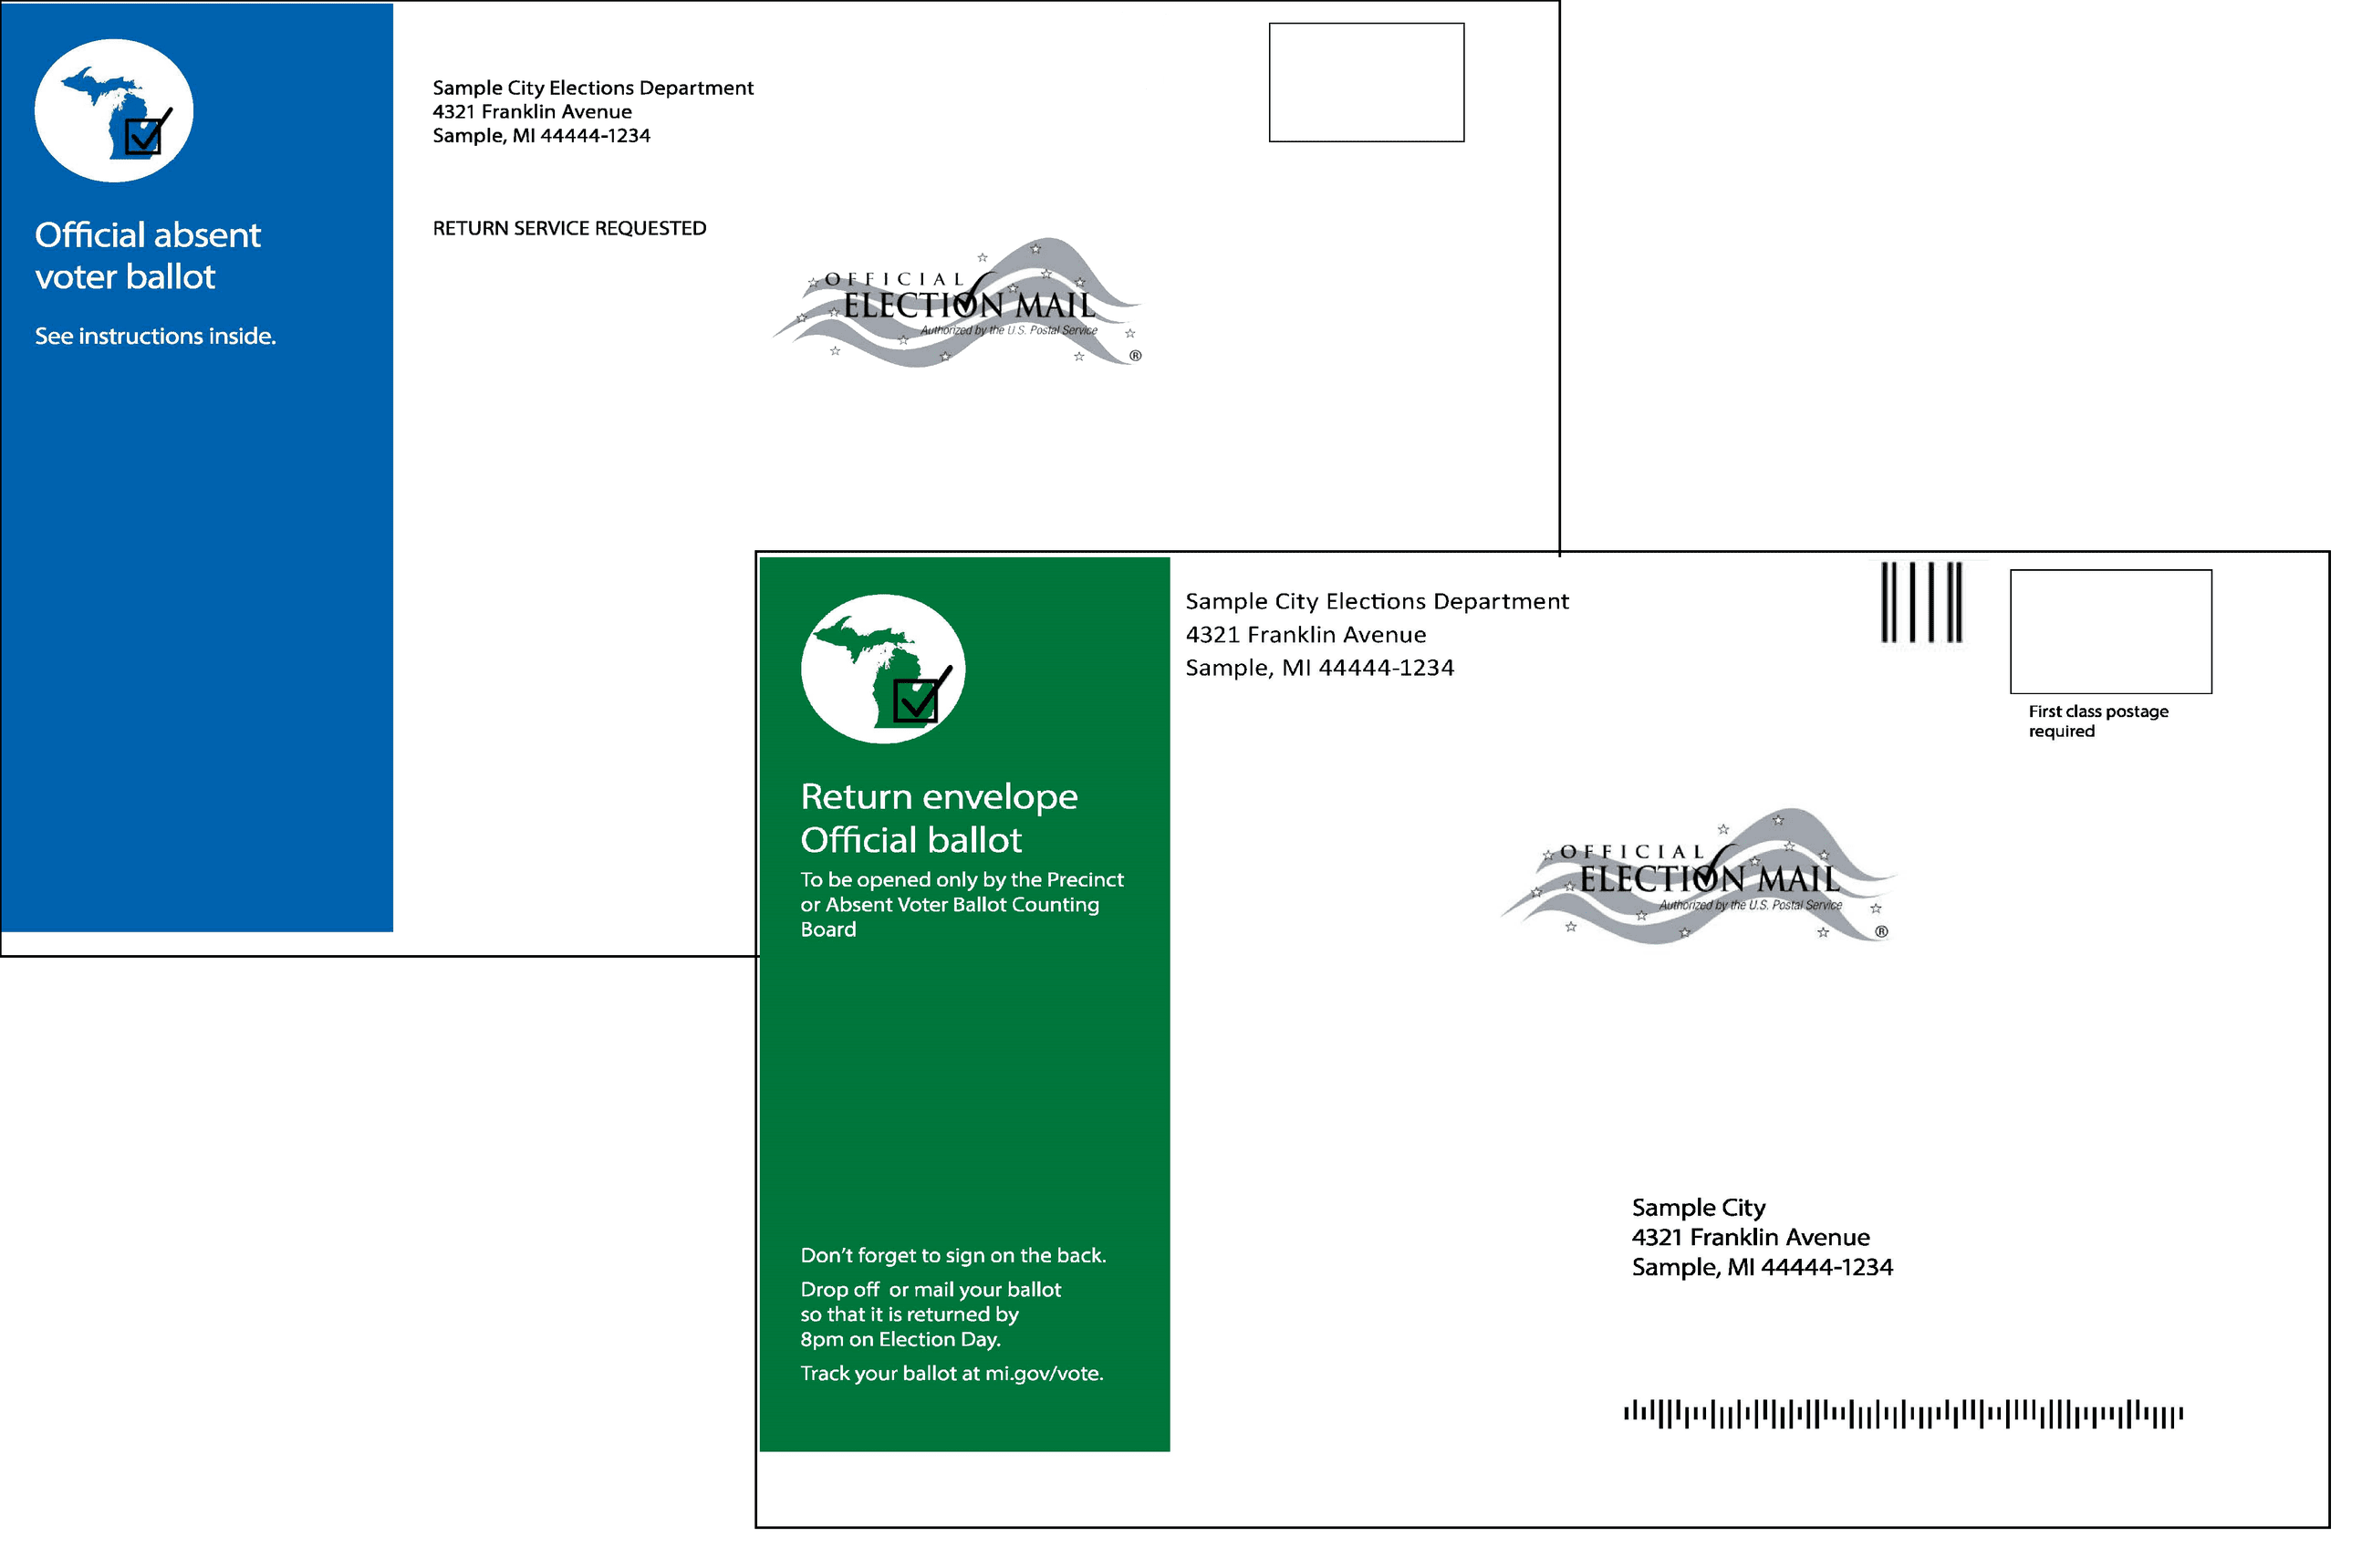 New AV Envelopes